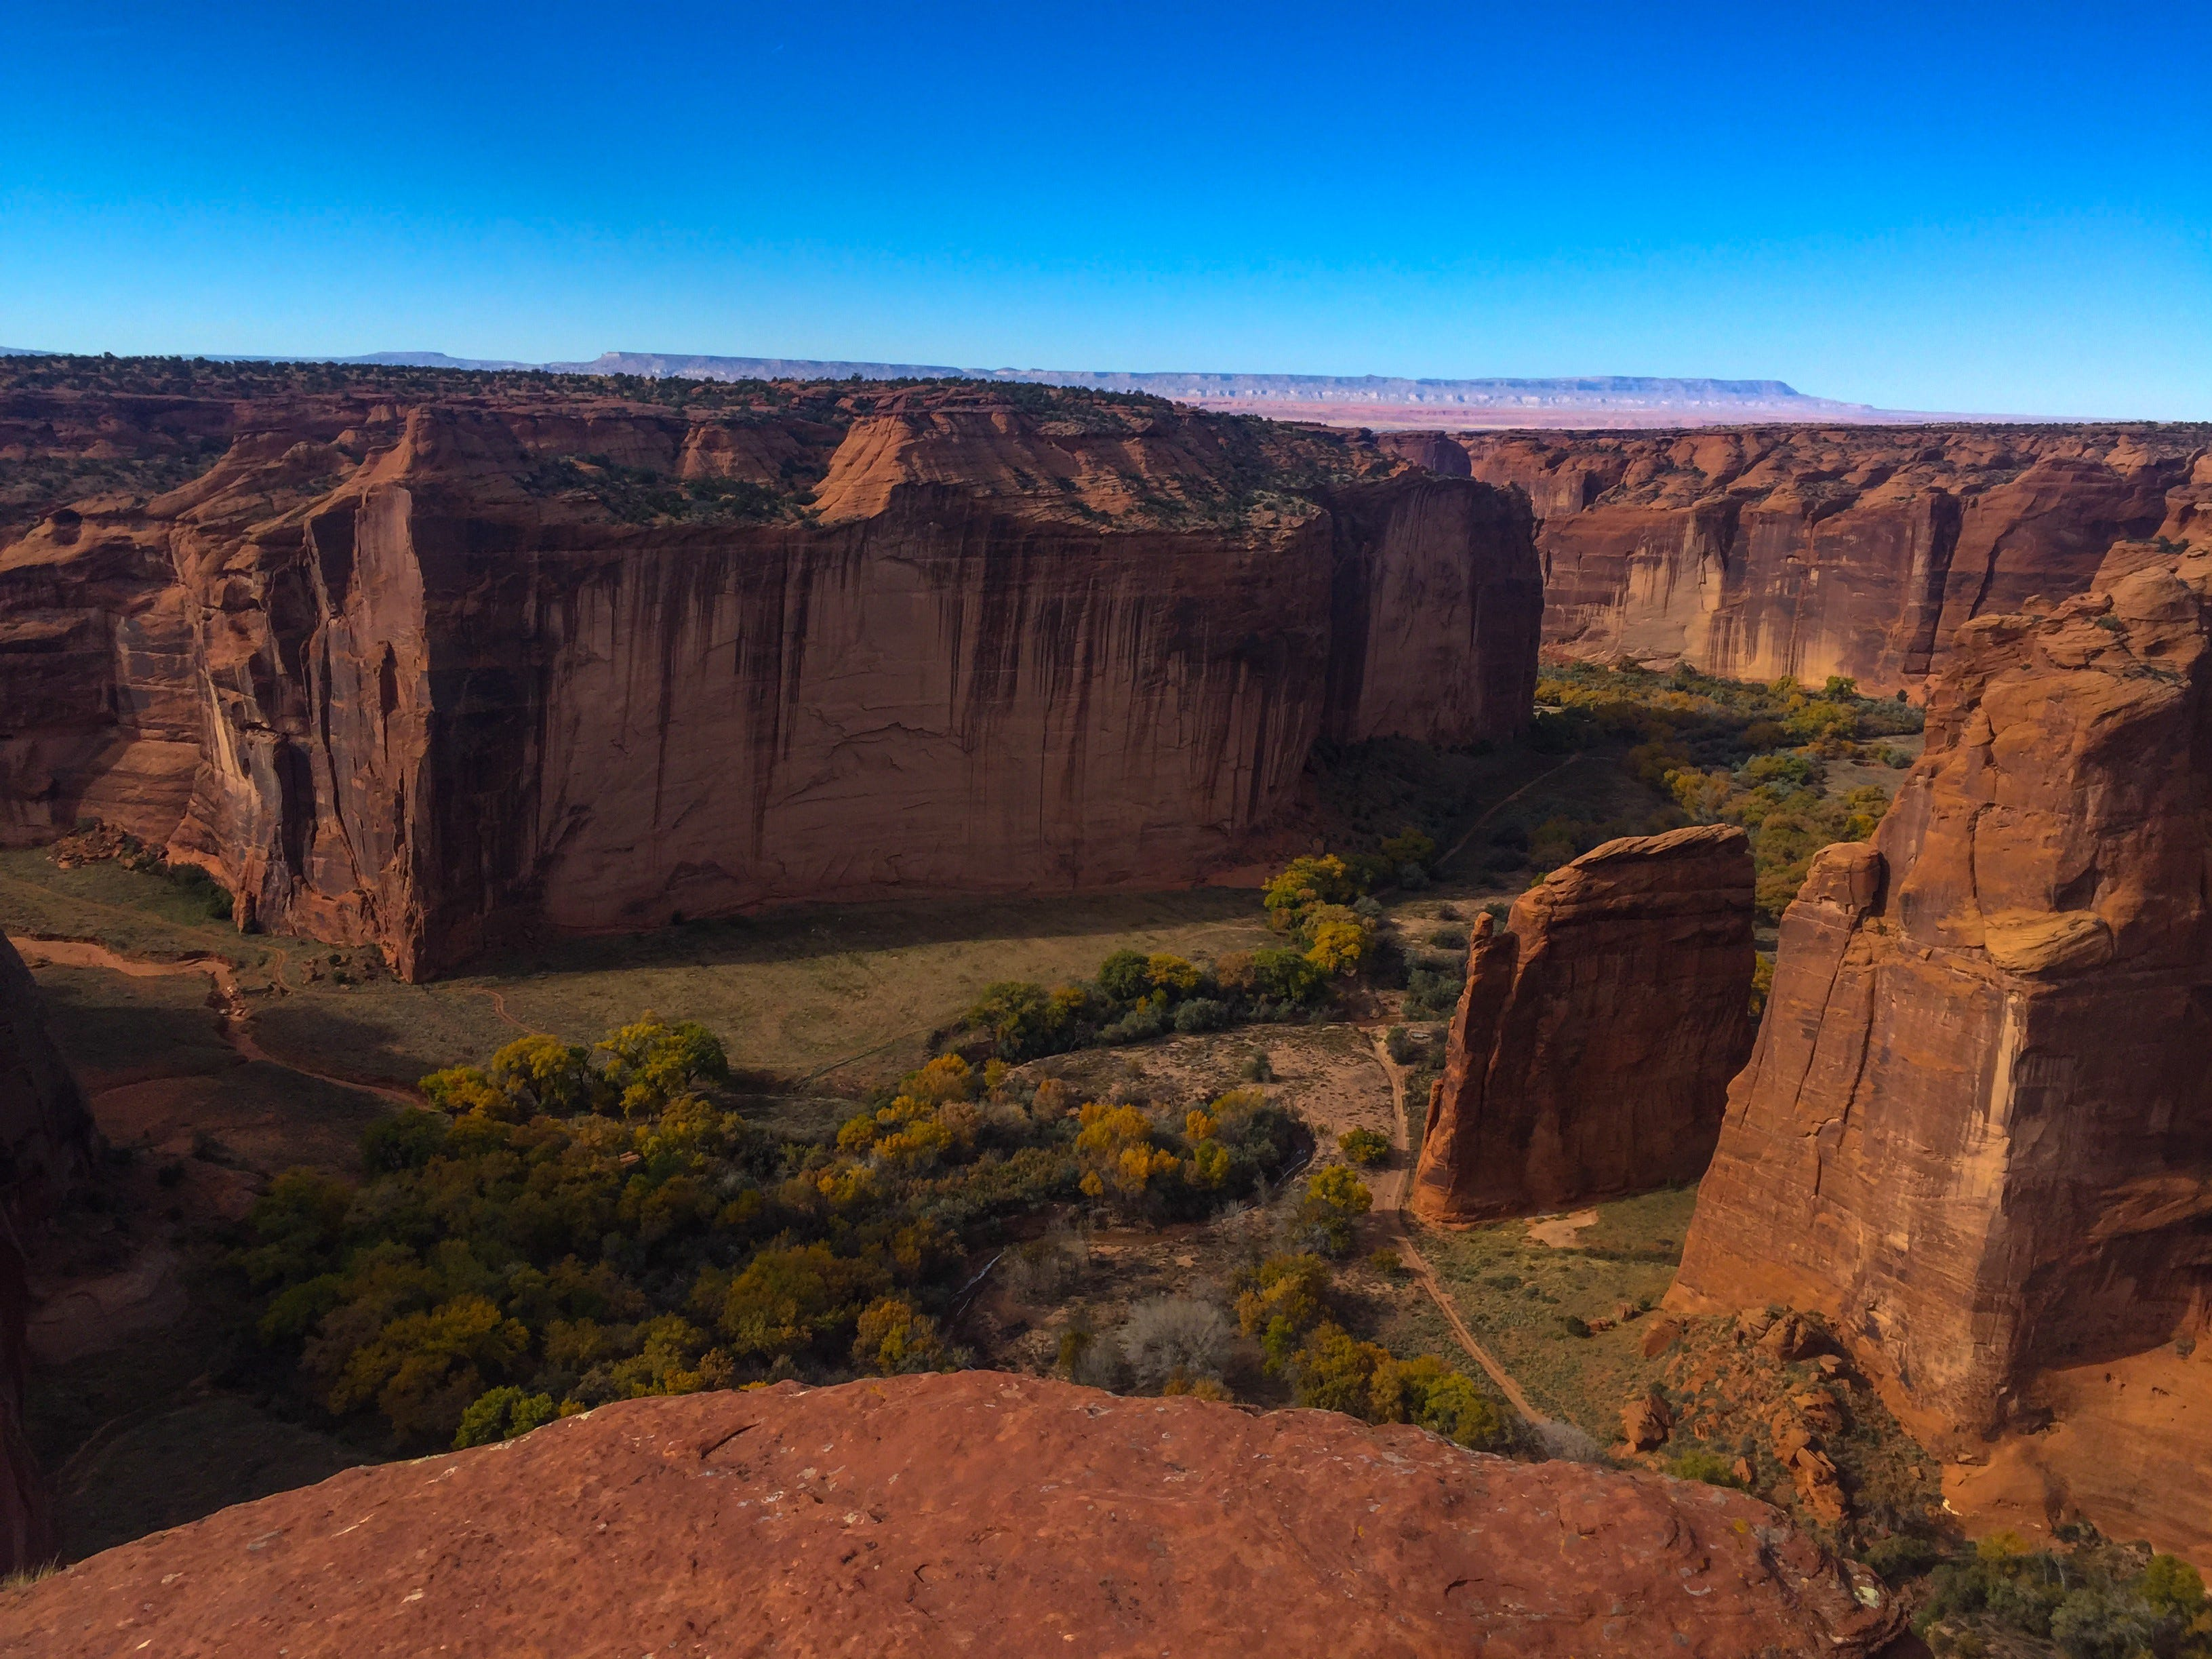 Visitors to Canyon de Chelly must hire a guide to tour the floor.